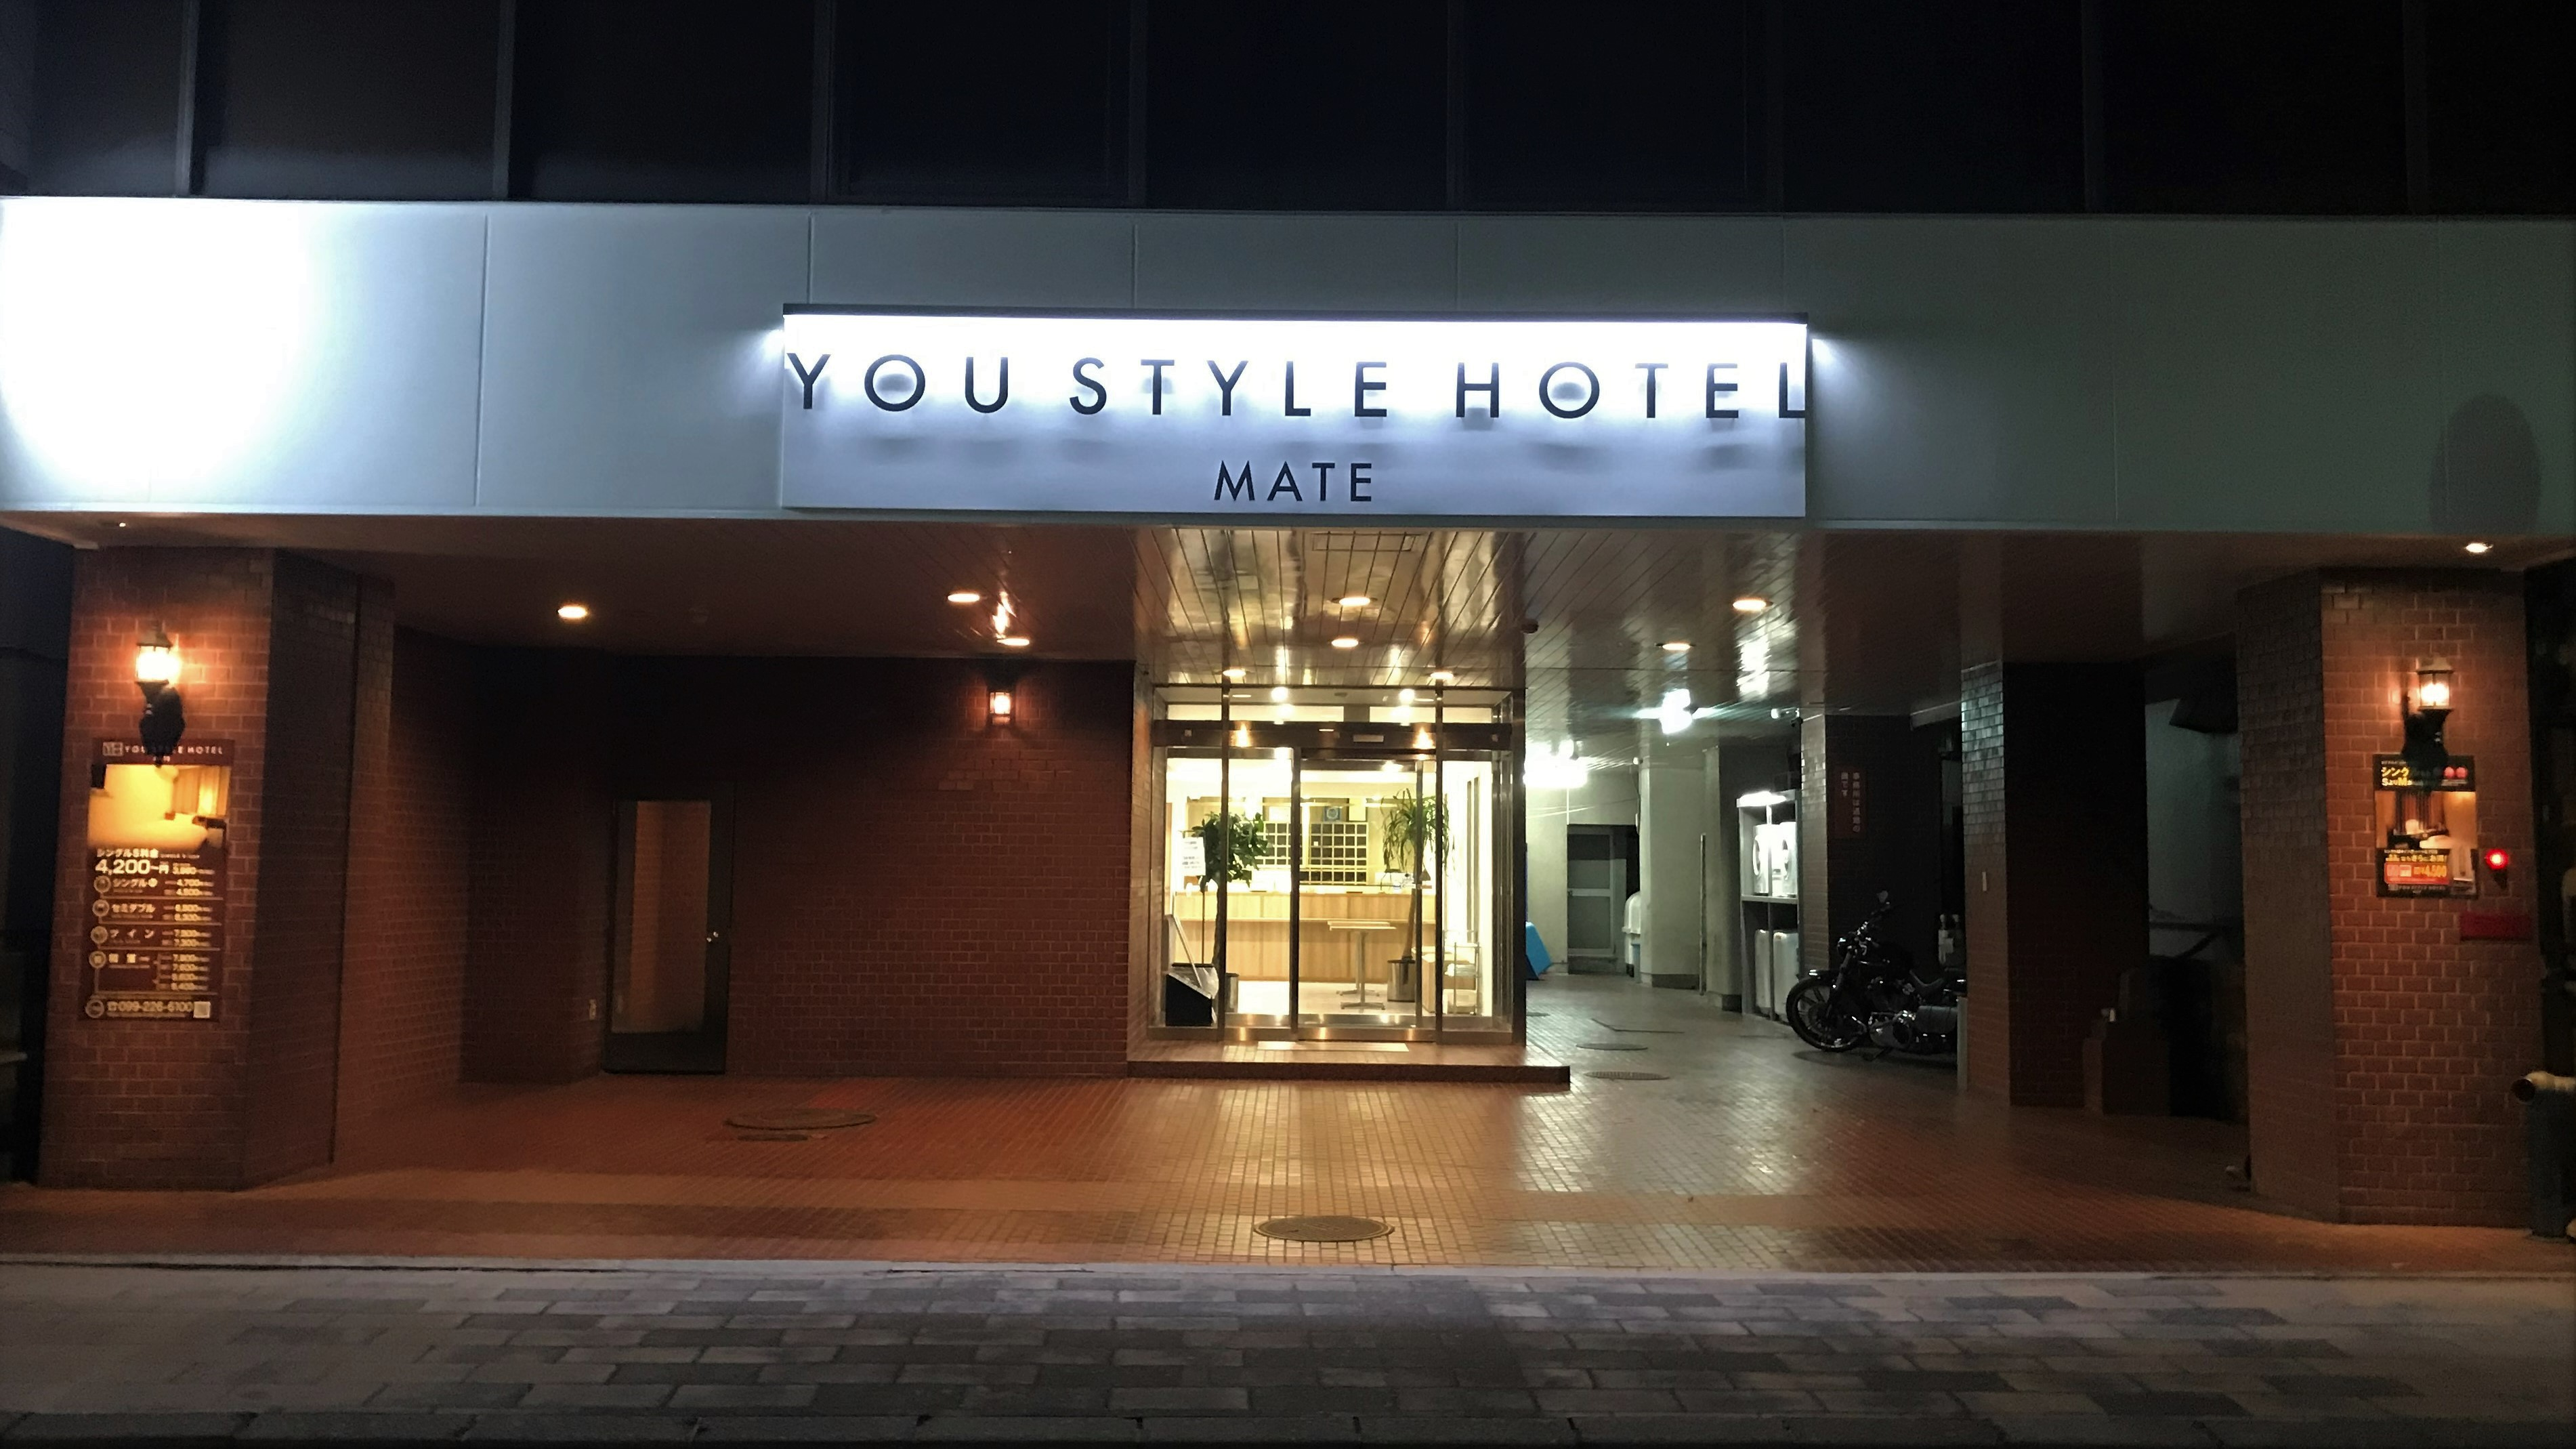 YOUSTYLE HOTEL MATE